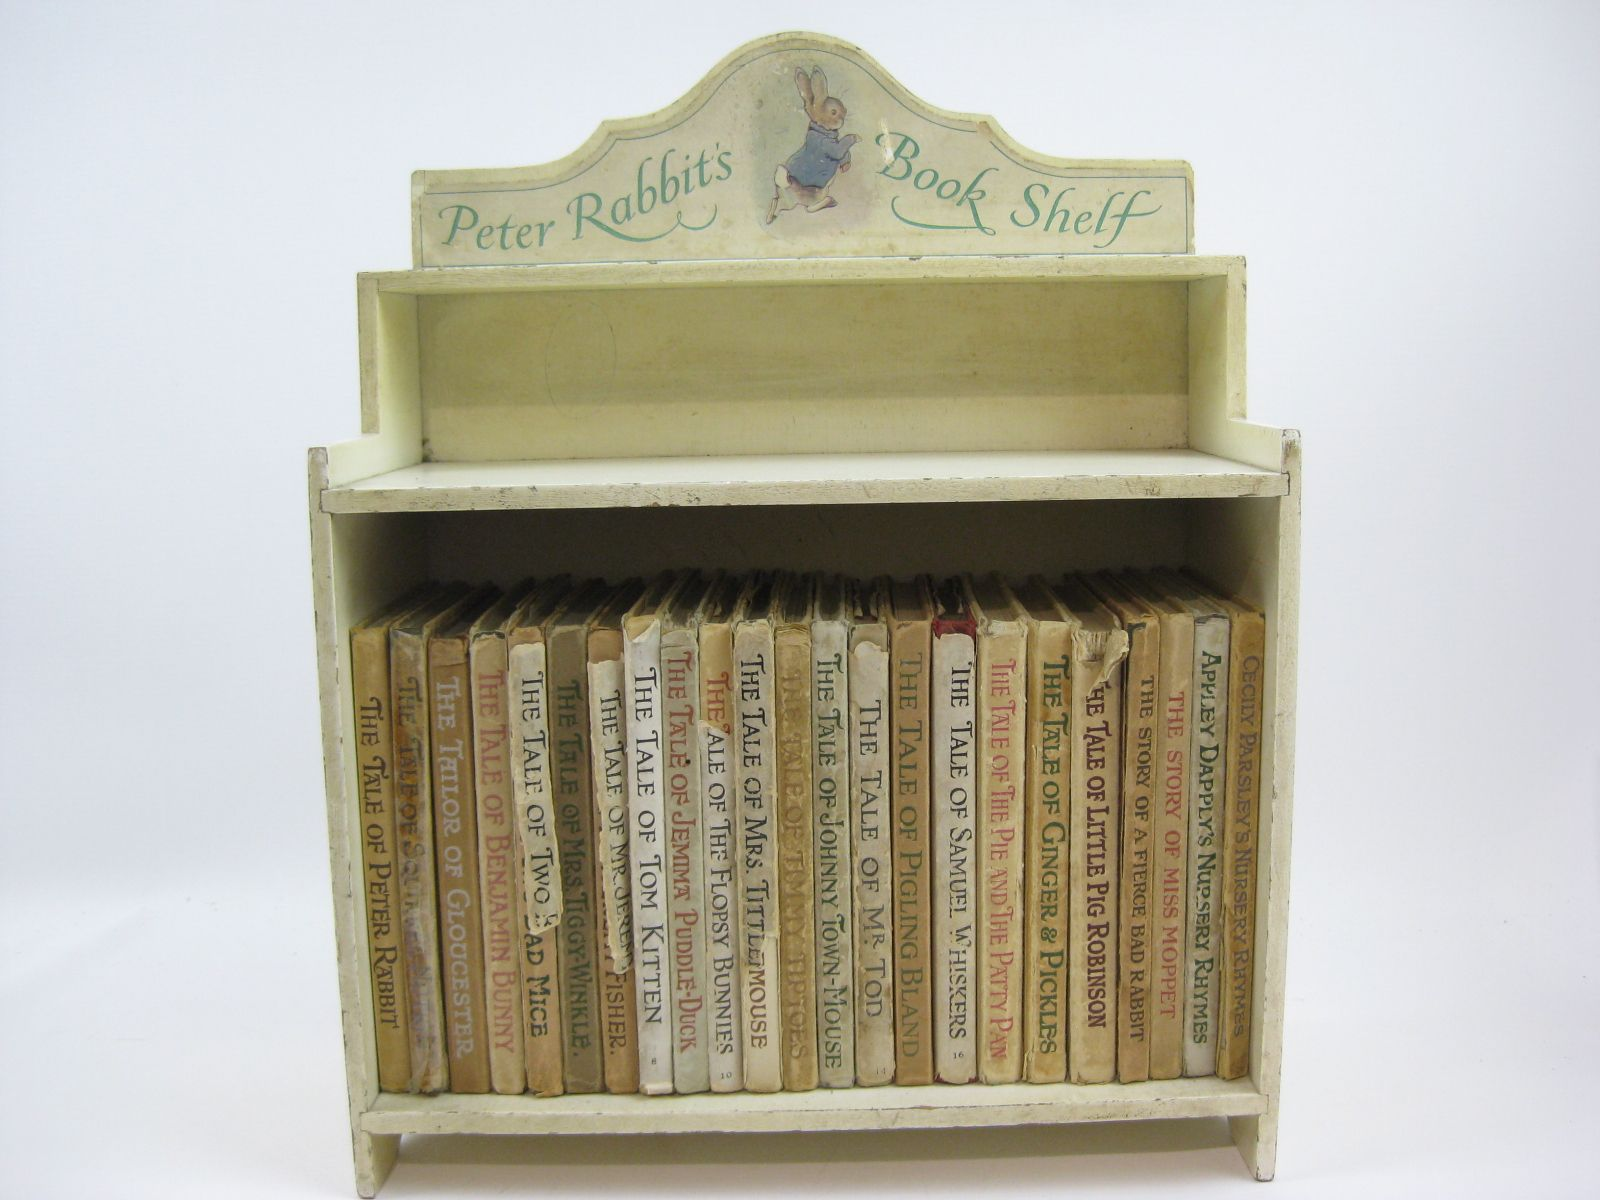 Photo of THE WORLD OF PETER RABBIT (COMPLETE SET OF THE TALES WITH BOOKSHELF)